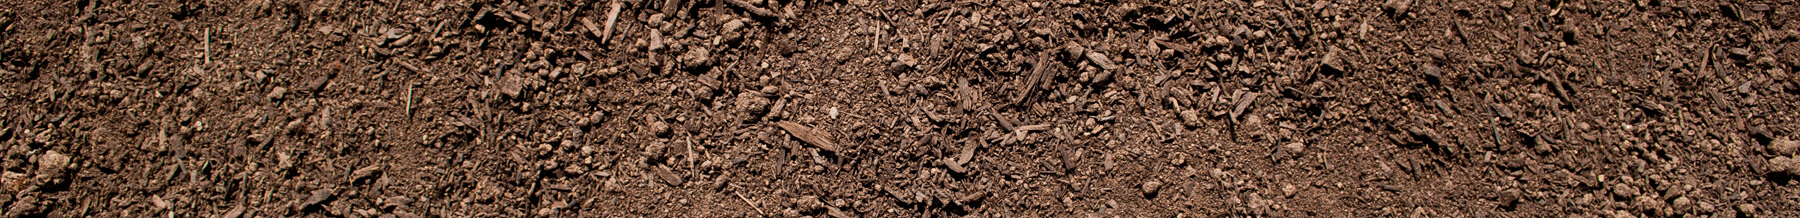 close up wide shot of garden soil